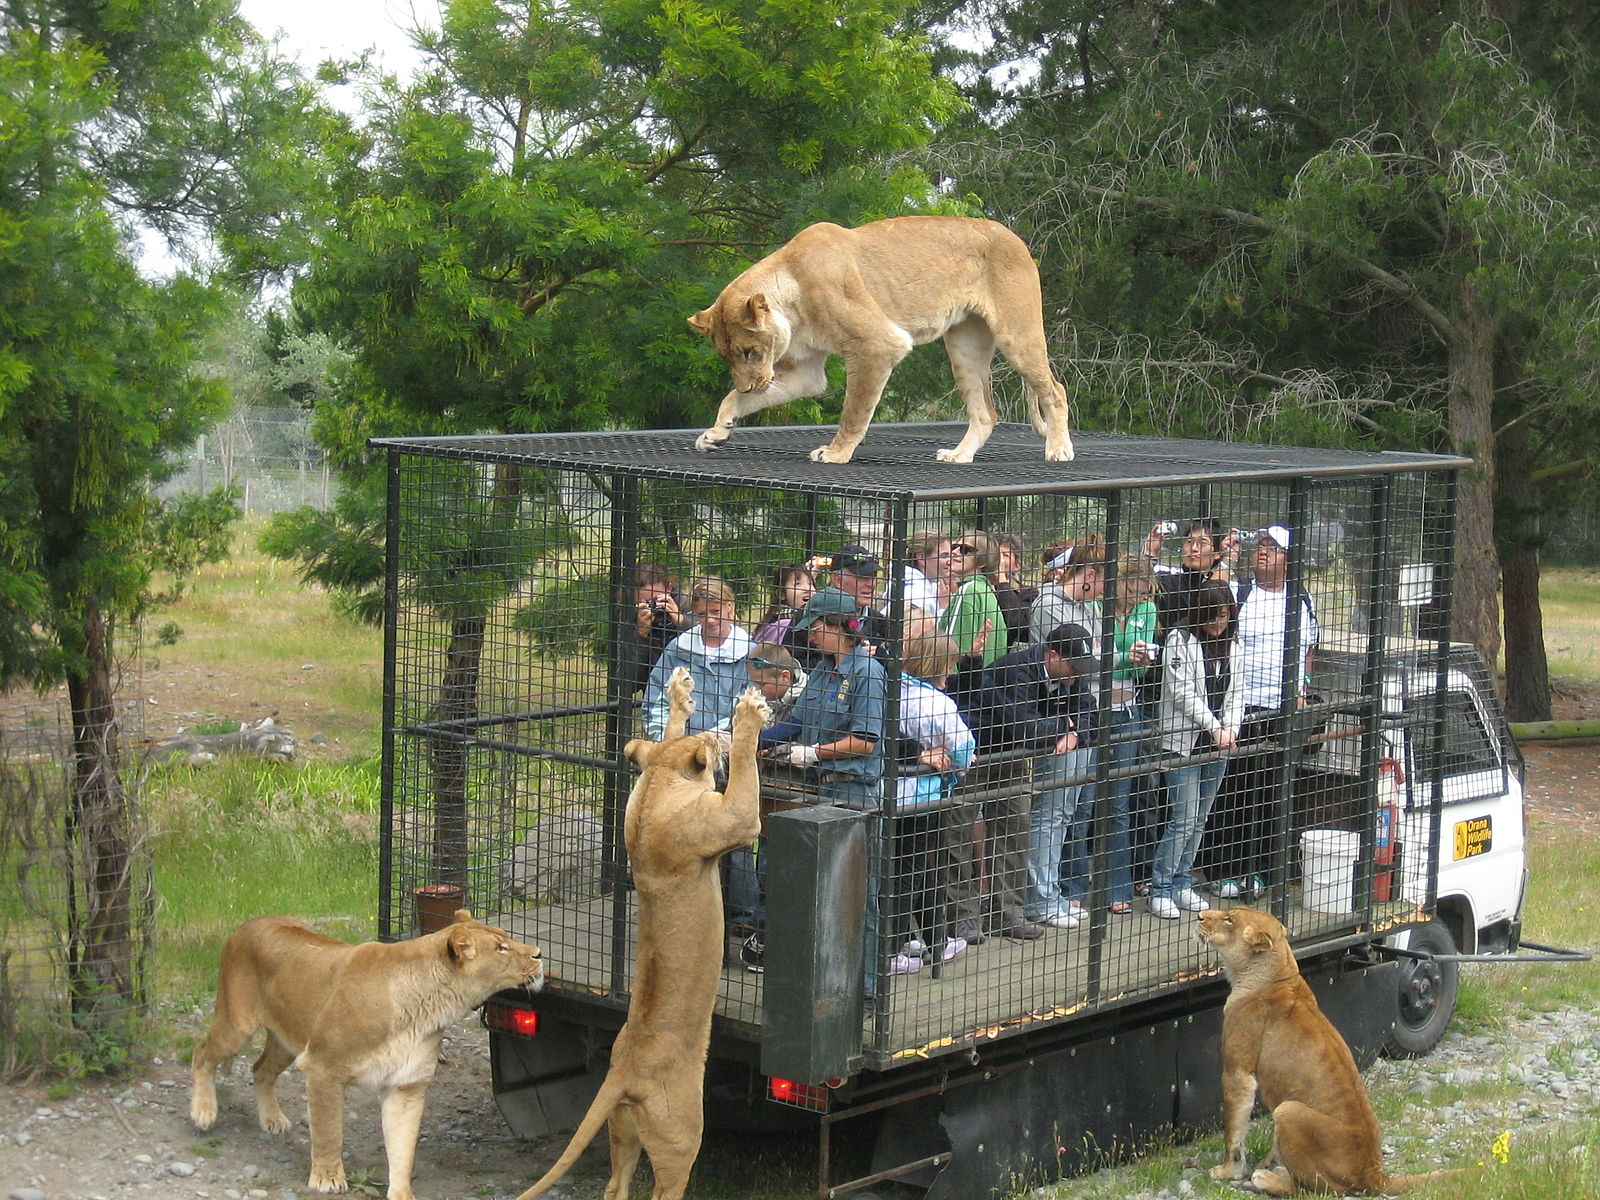 An inverted Zoo. Which are in better health? (Photo CCBY Greg HewGill)